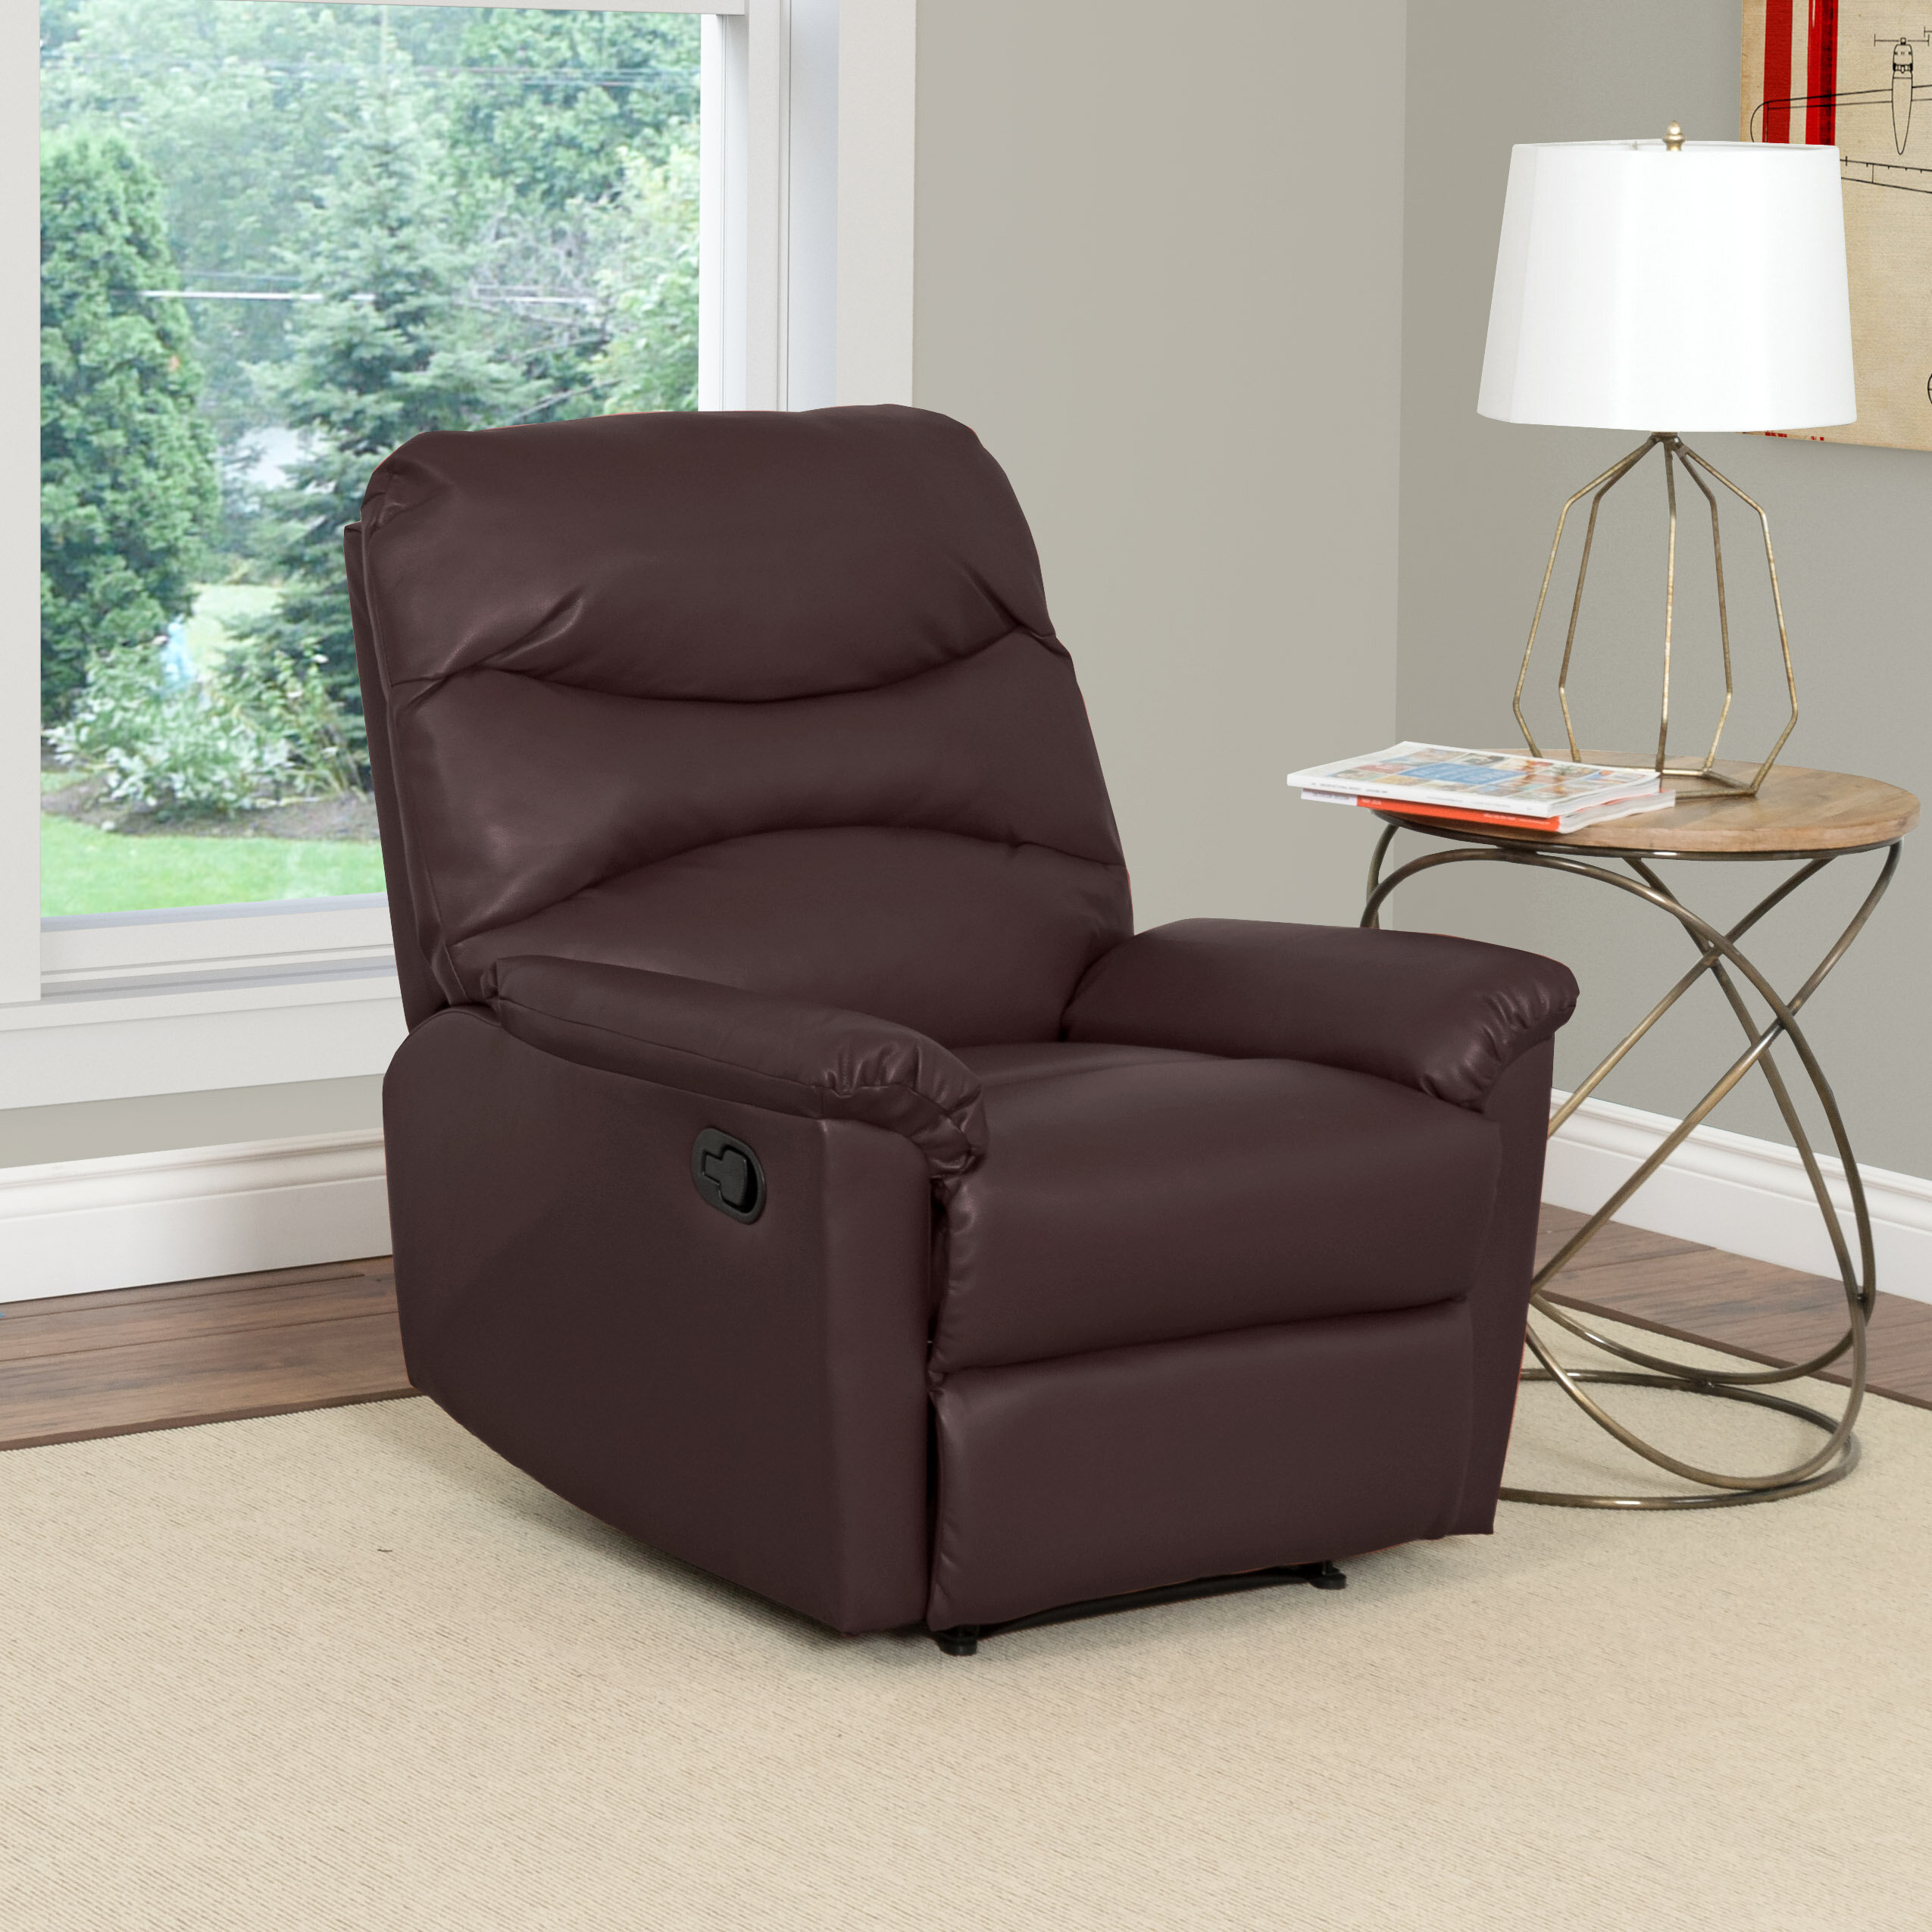 Red Barrel Studio Sexton Faux Leather Manual Recliner With Massage Reviews Wayfair Ca